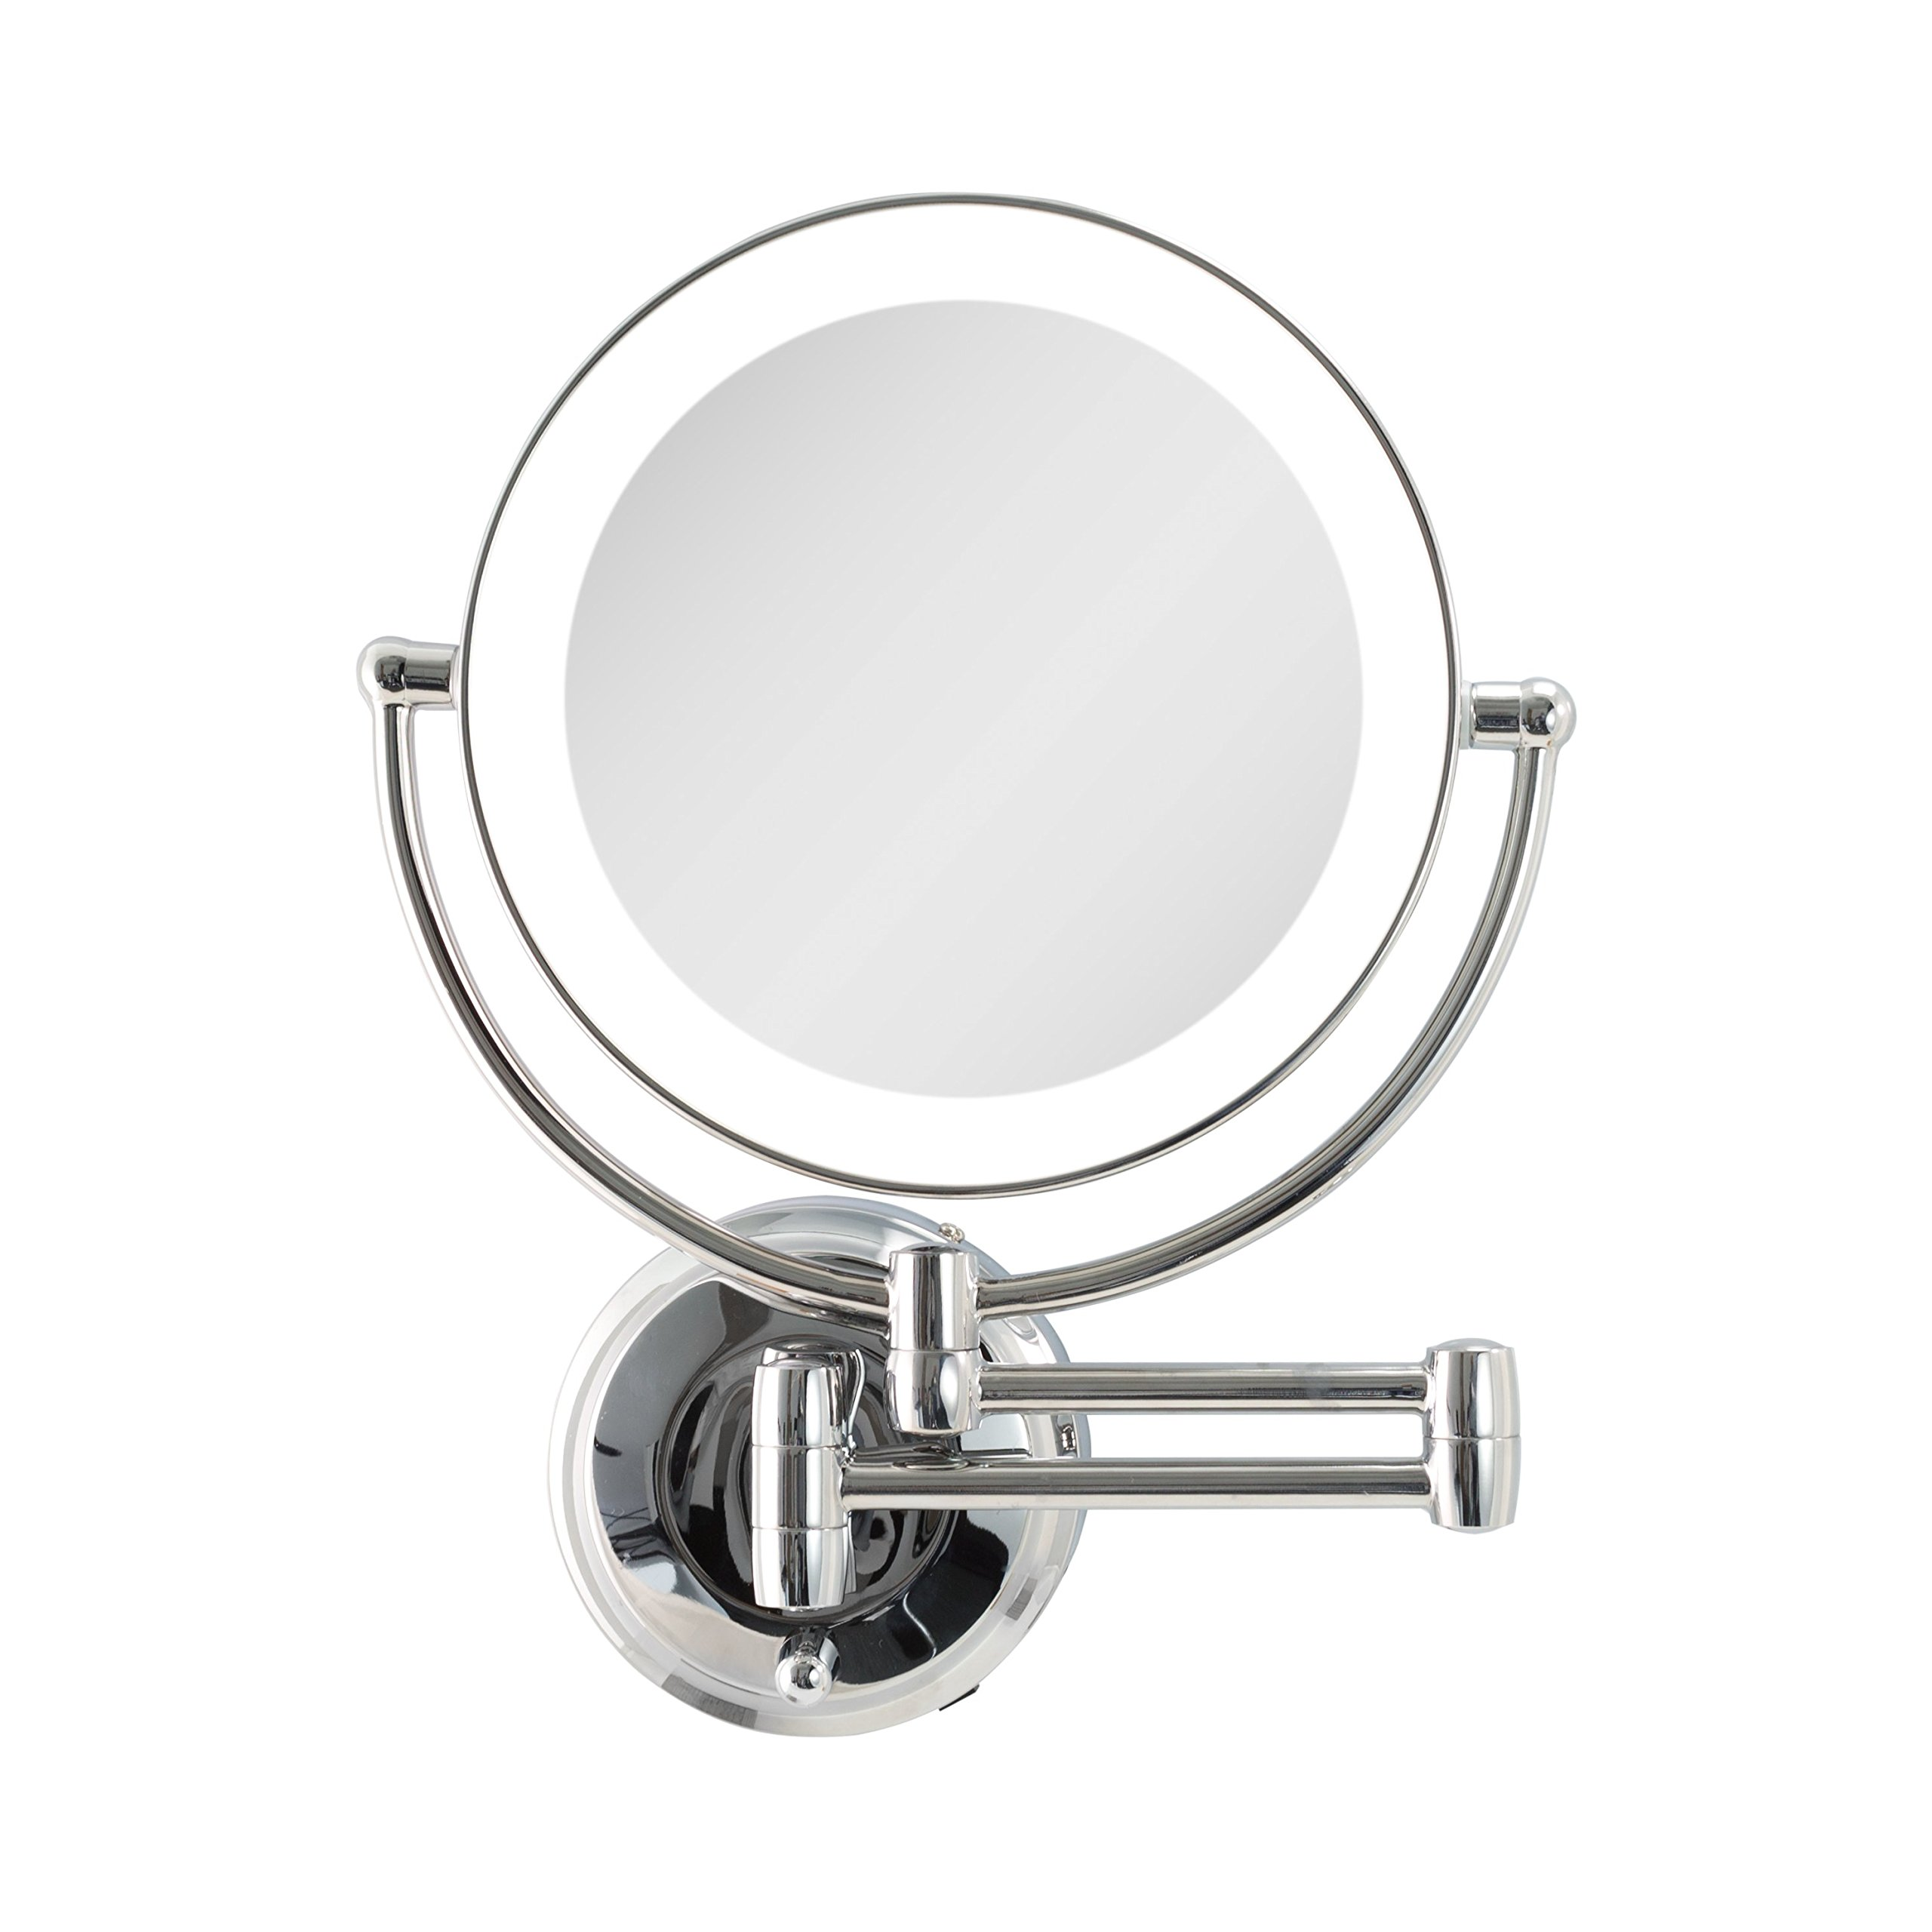 Zadro Cordless Dual LED Lighted Round Wall Mount Make Up Mirror with 1X & 10X magnification in Chrome Finish.